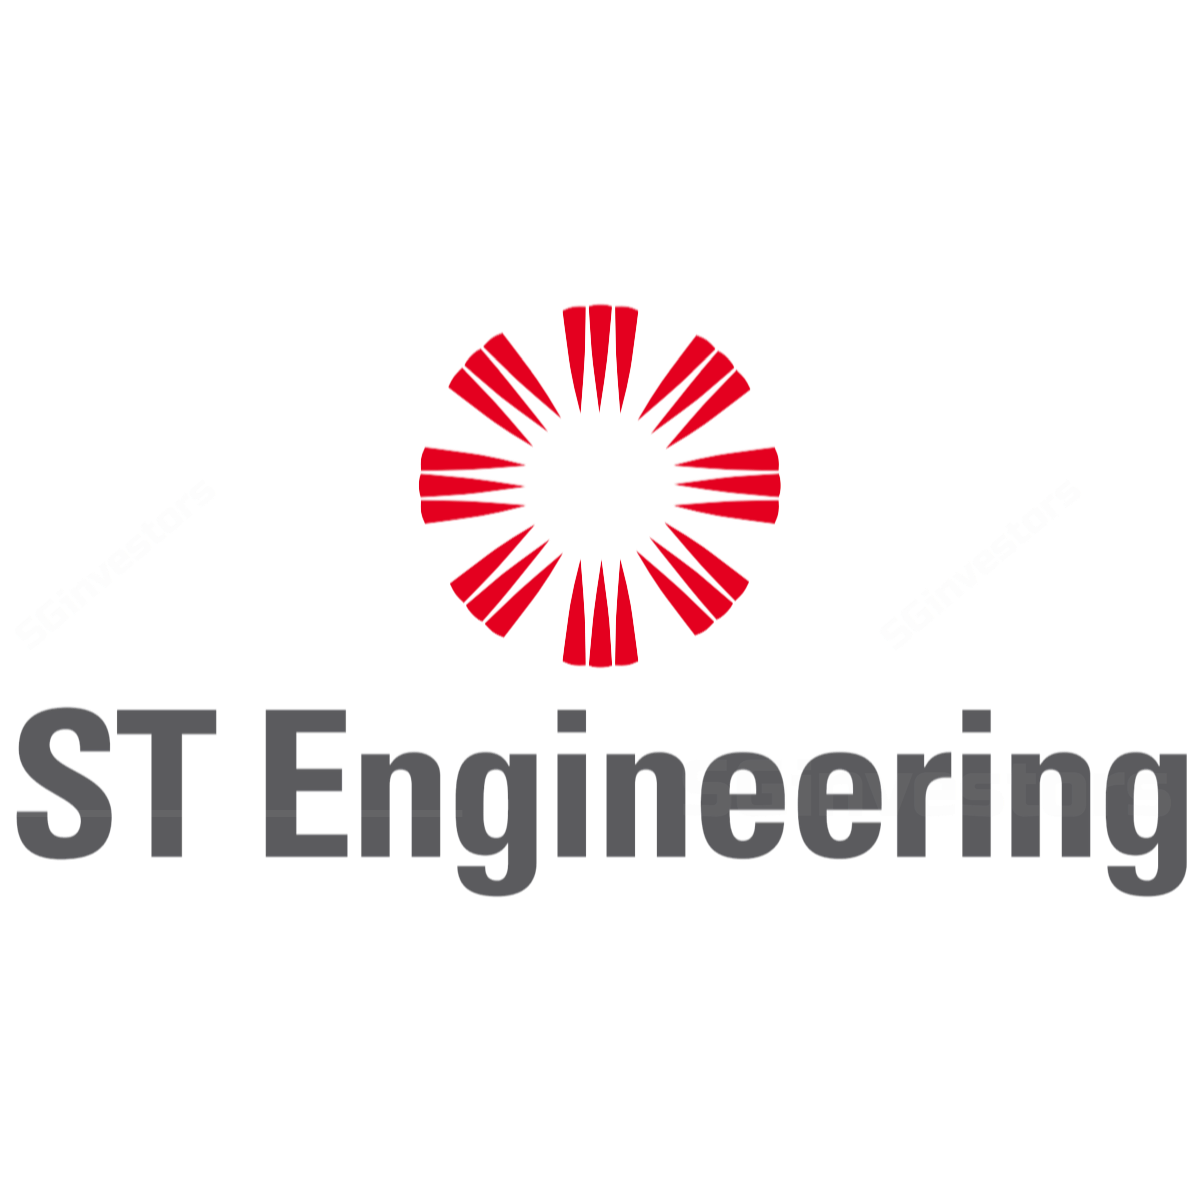 ST Engineering (STE SP) - Maybank Kim Eng 2018-03-23: 2018 Investor Day Takeaways